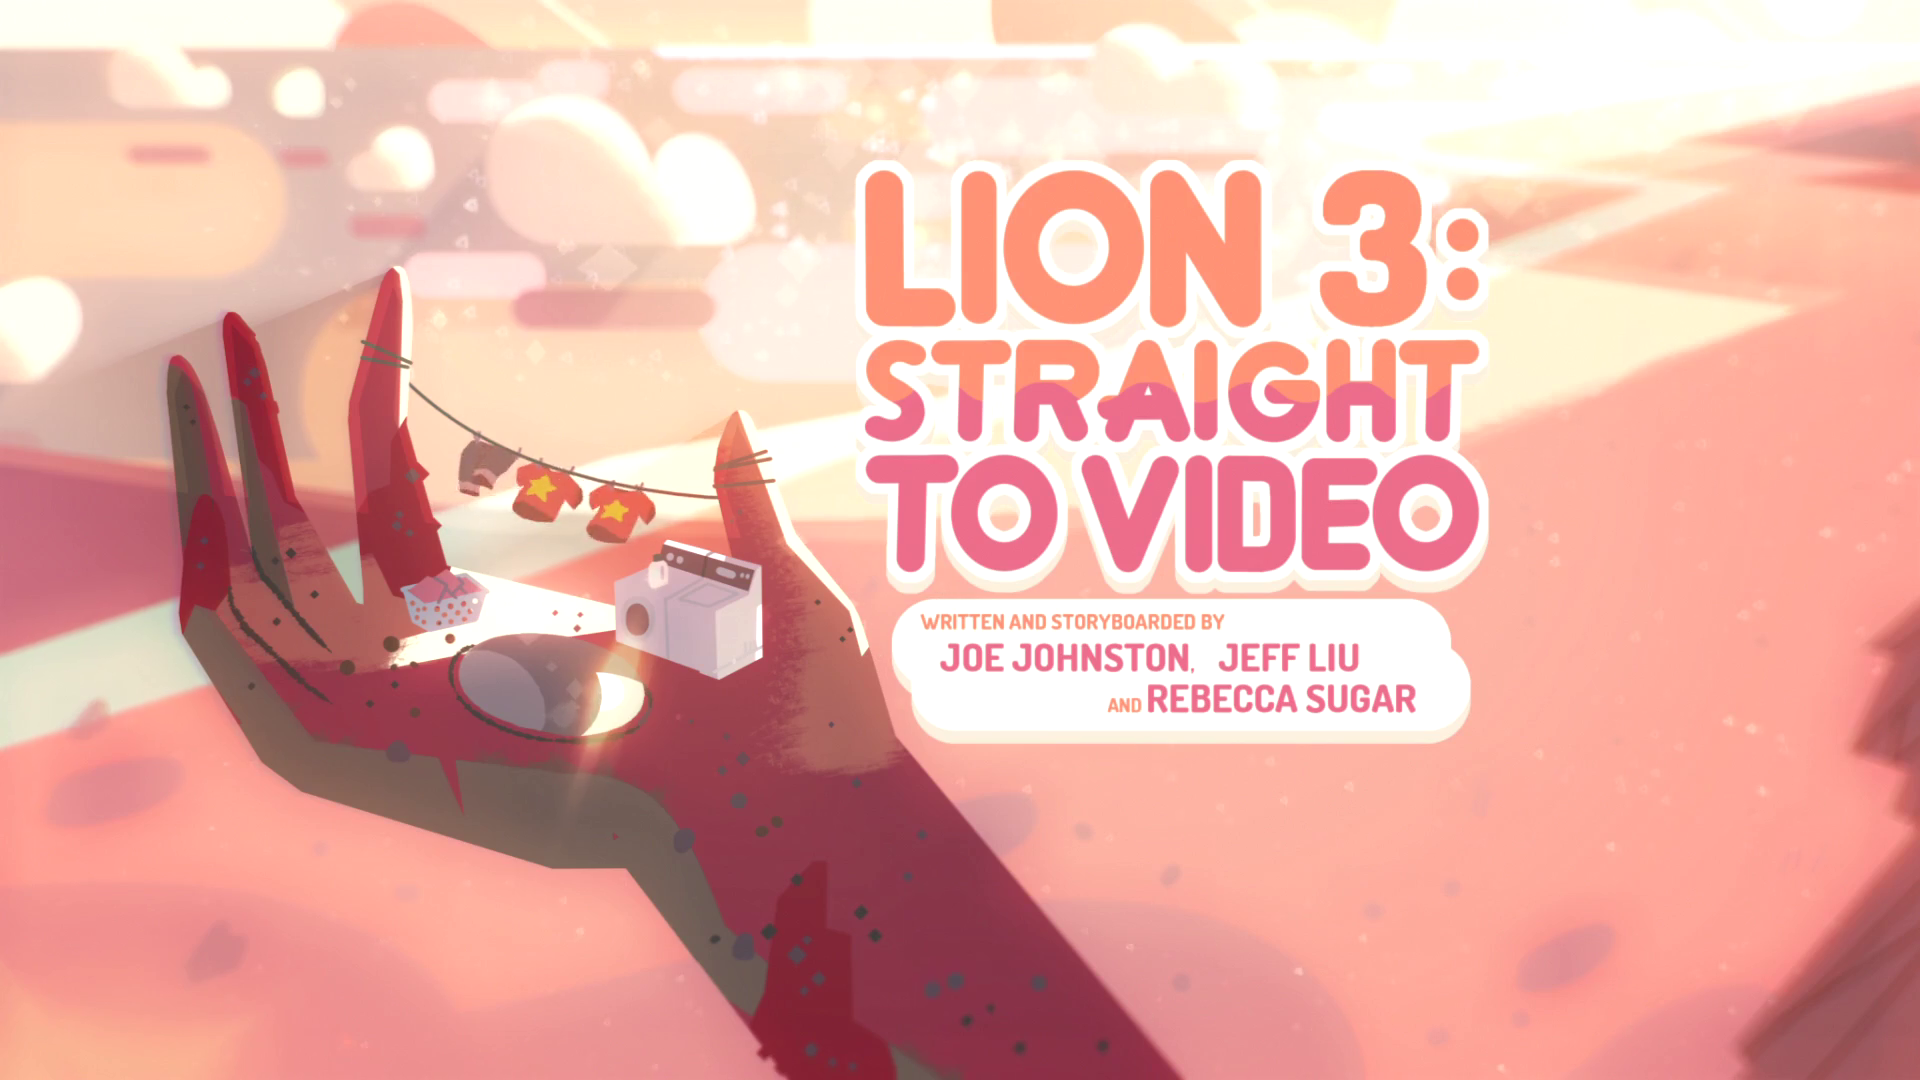 Lion 3: Straight to Video/Gallery